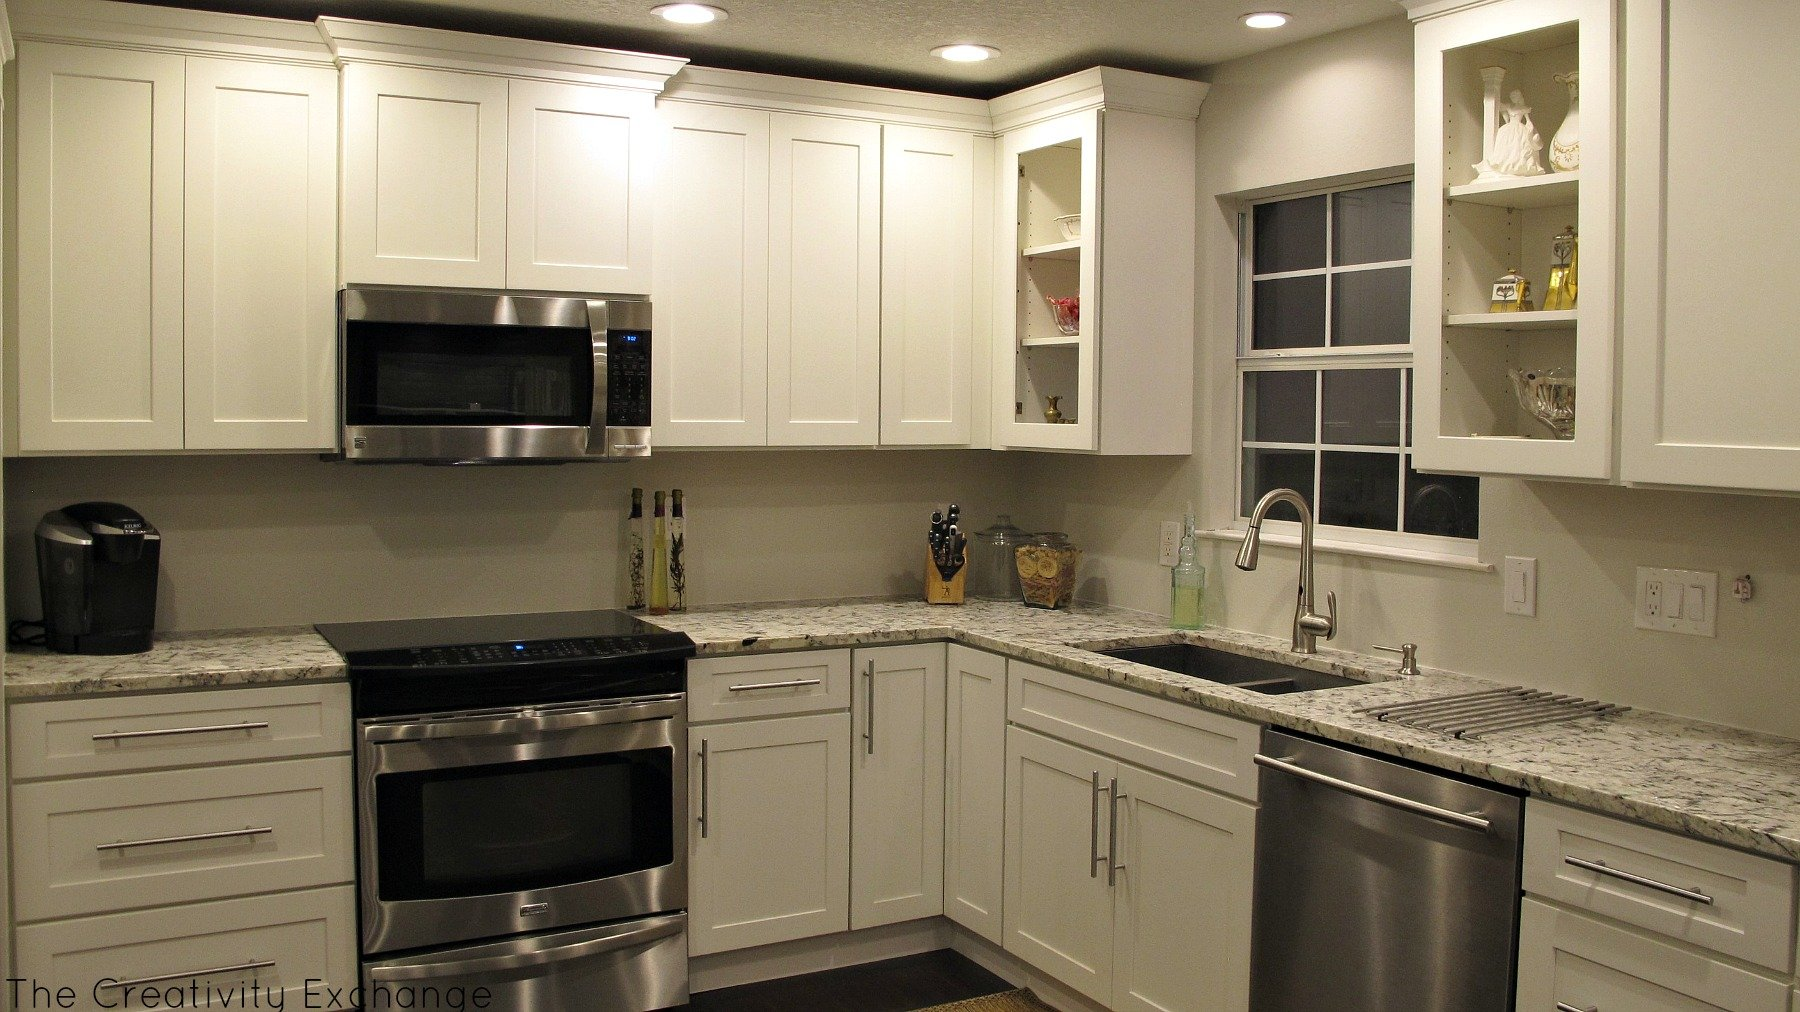 Cousin frank 39 s amazing kitchen remodel before after for Pictures for kitchen